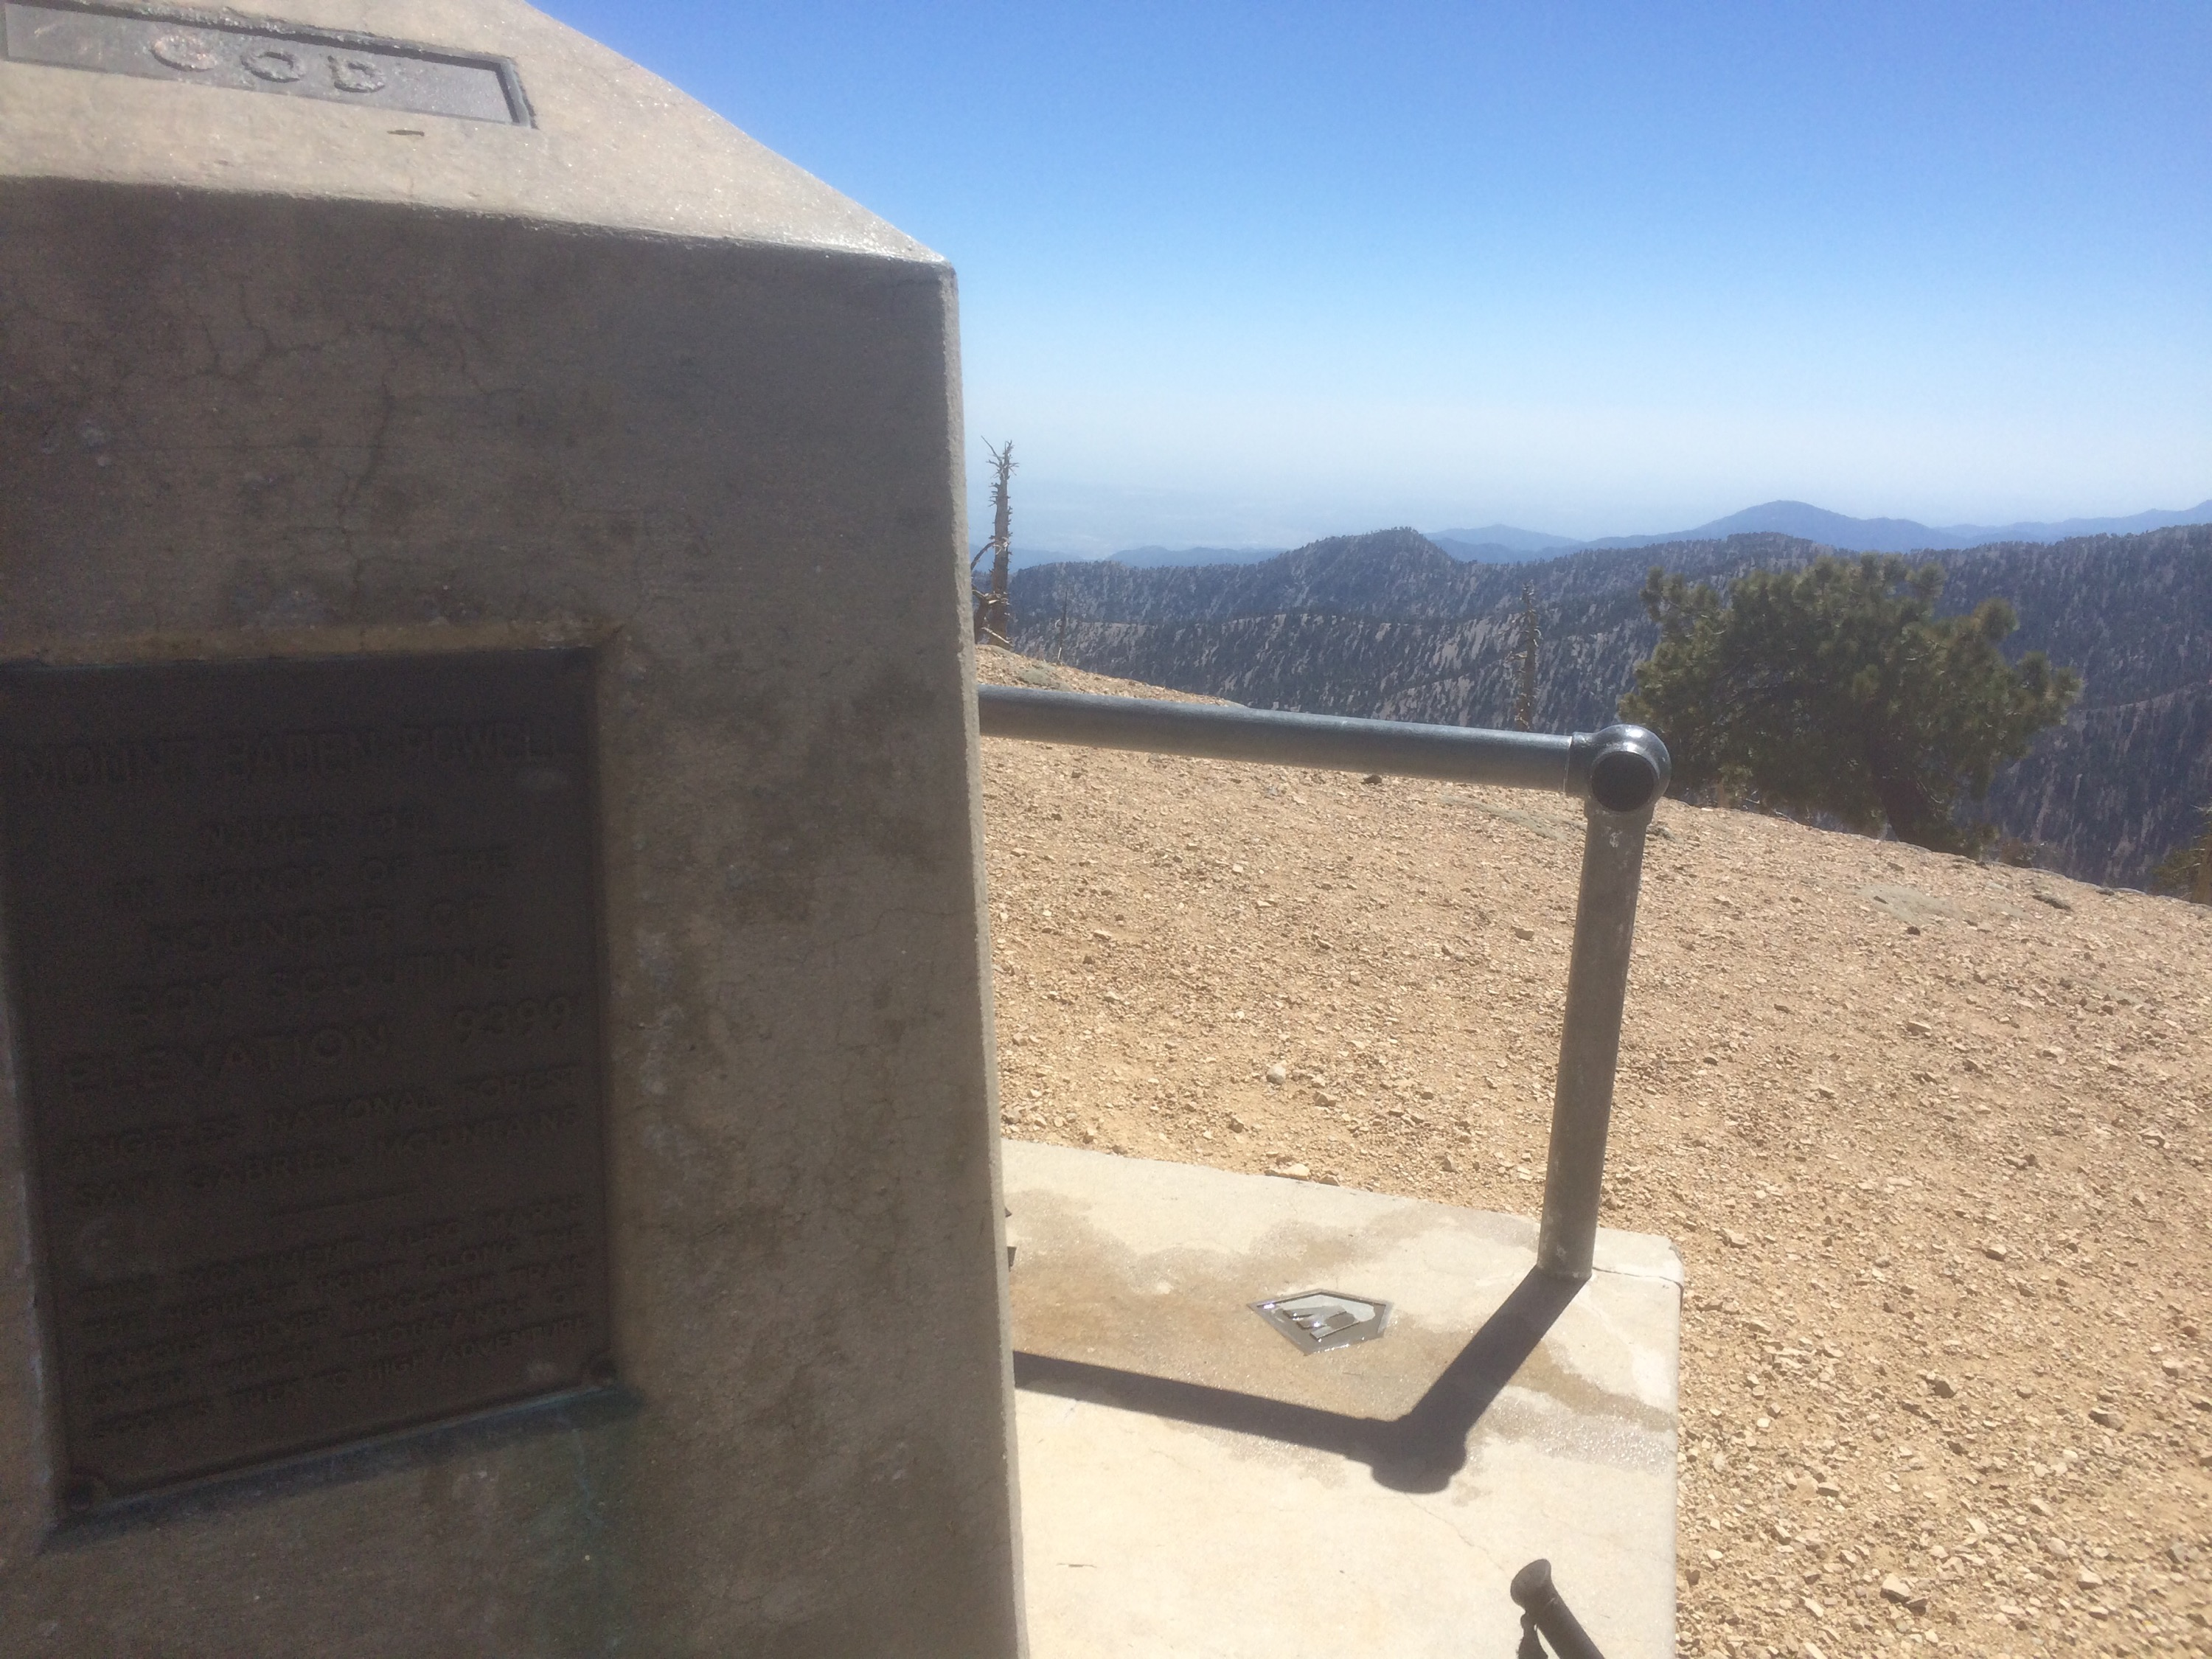 The top of Mt. Baden-Powell